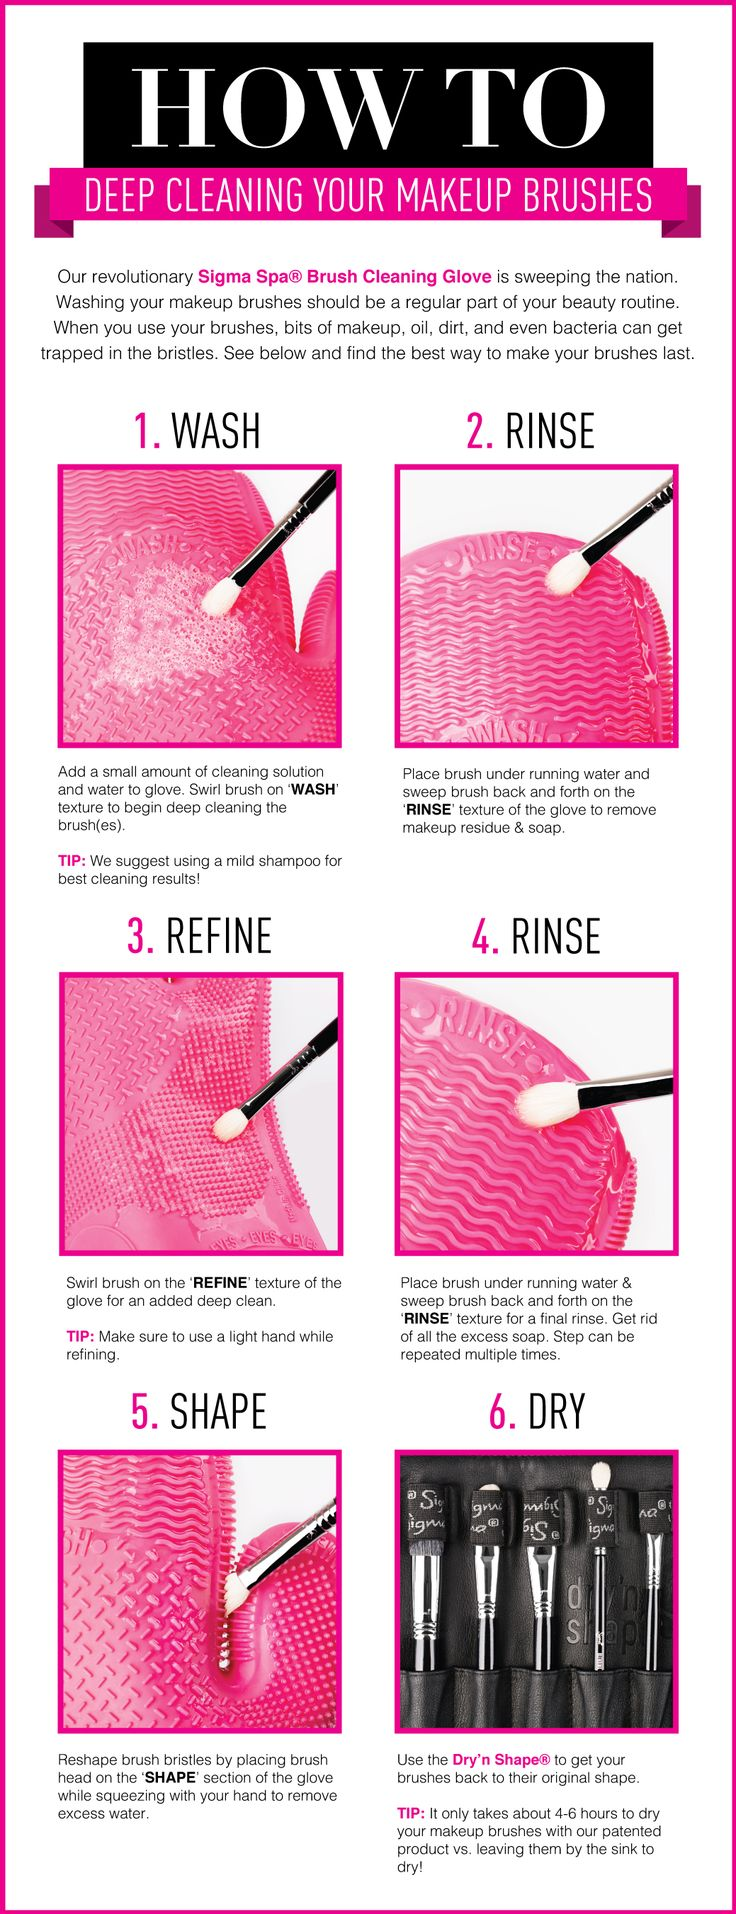 Learn how to clean your makeup brushes in 6 EASY steps with our well known Spa Brush Cleaning Glove!